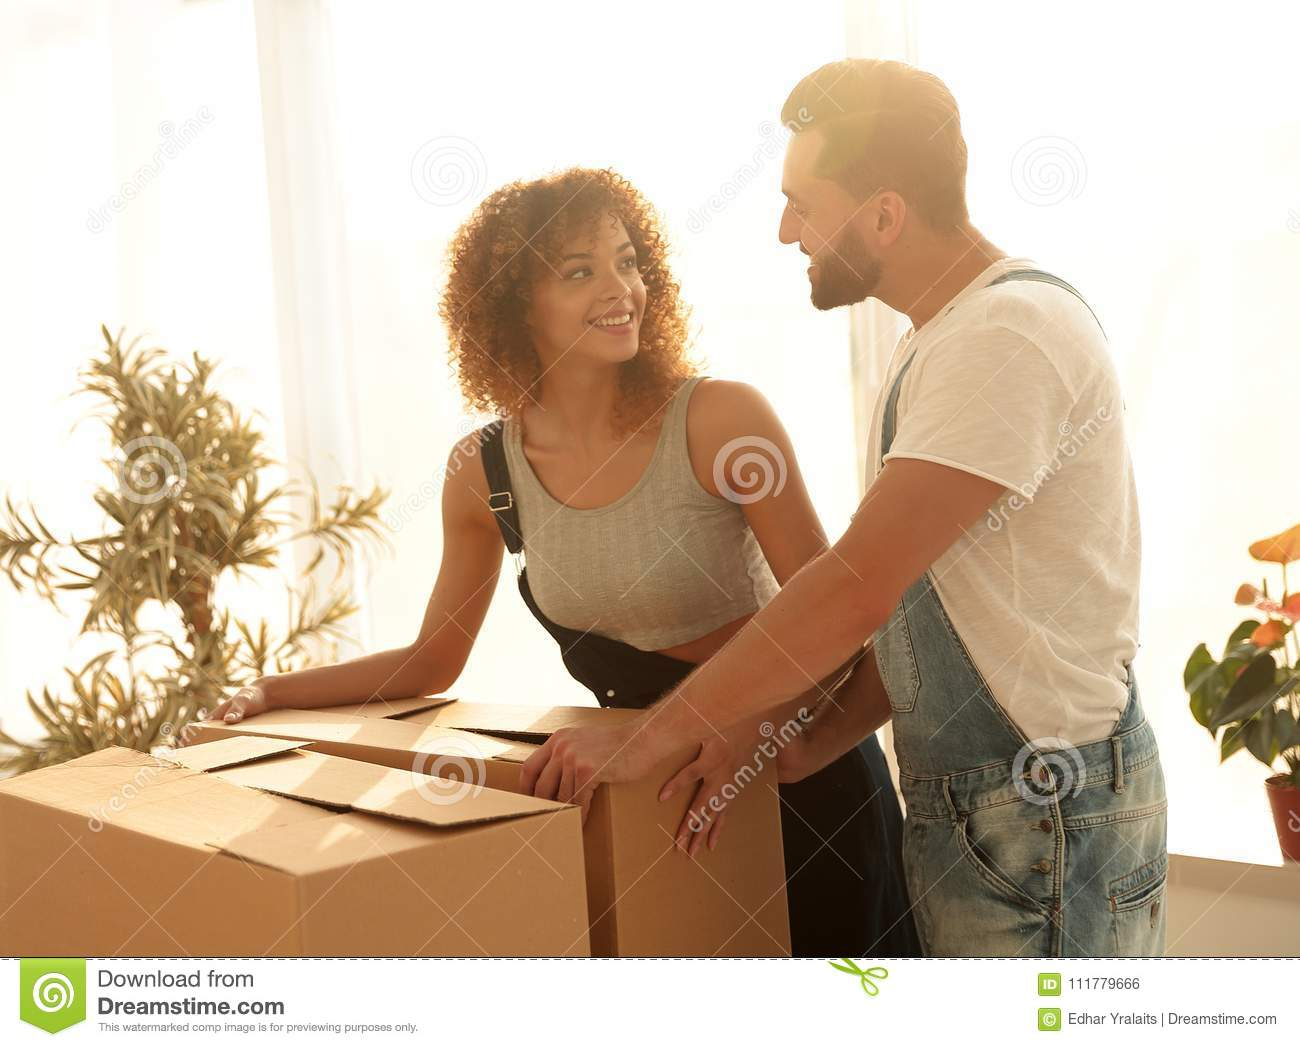 Newlyweds unpack boxes in a new apartment.